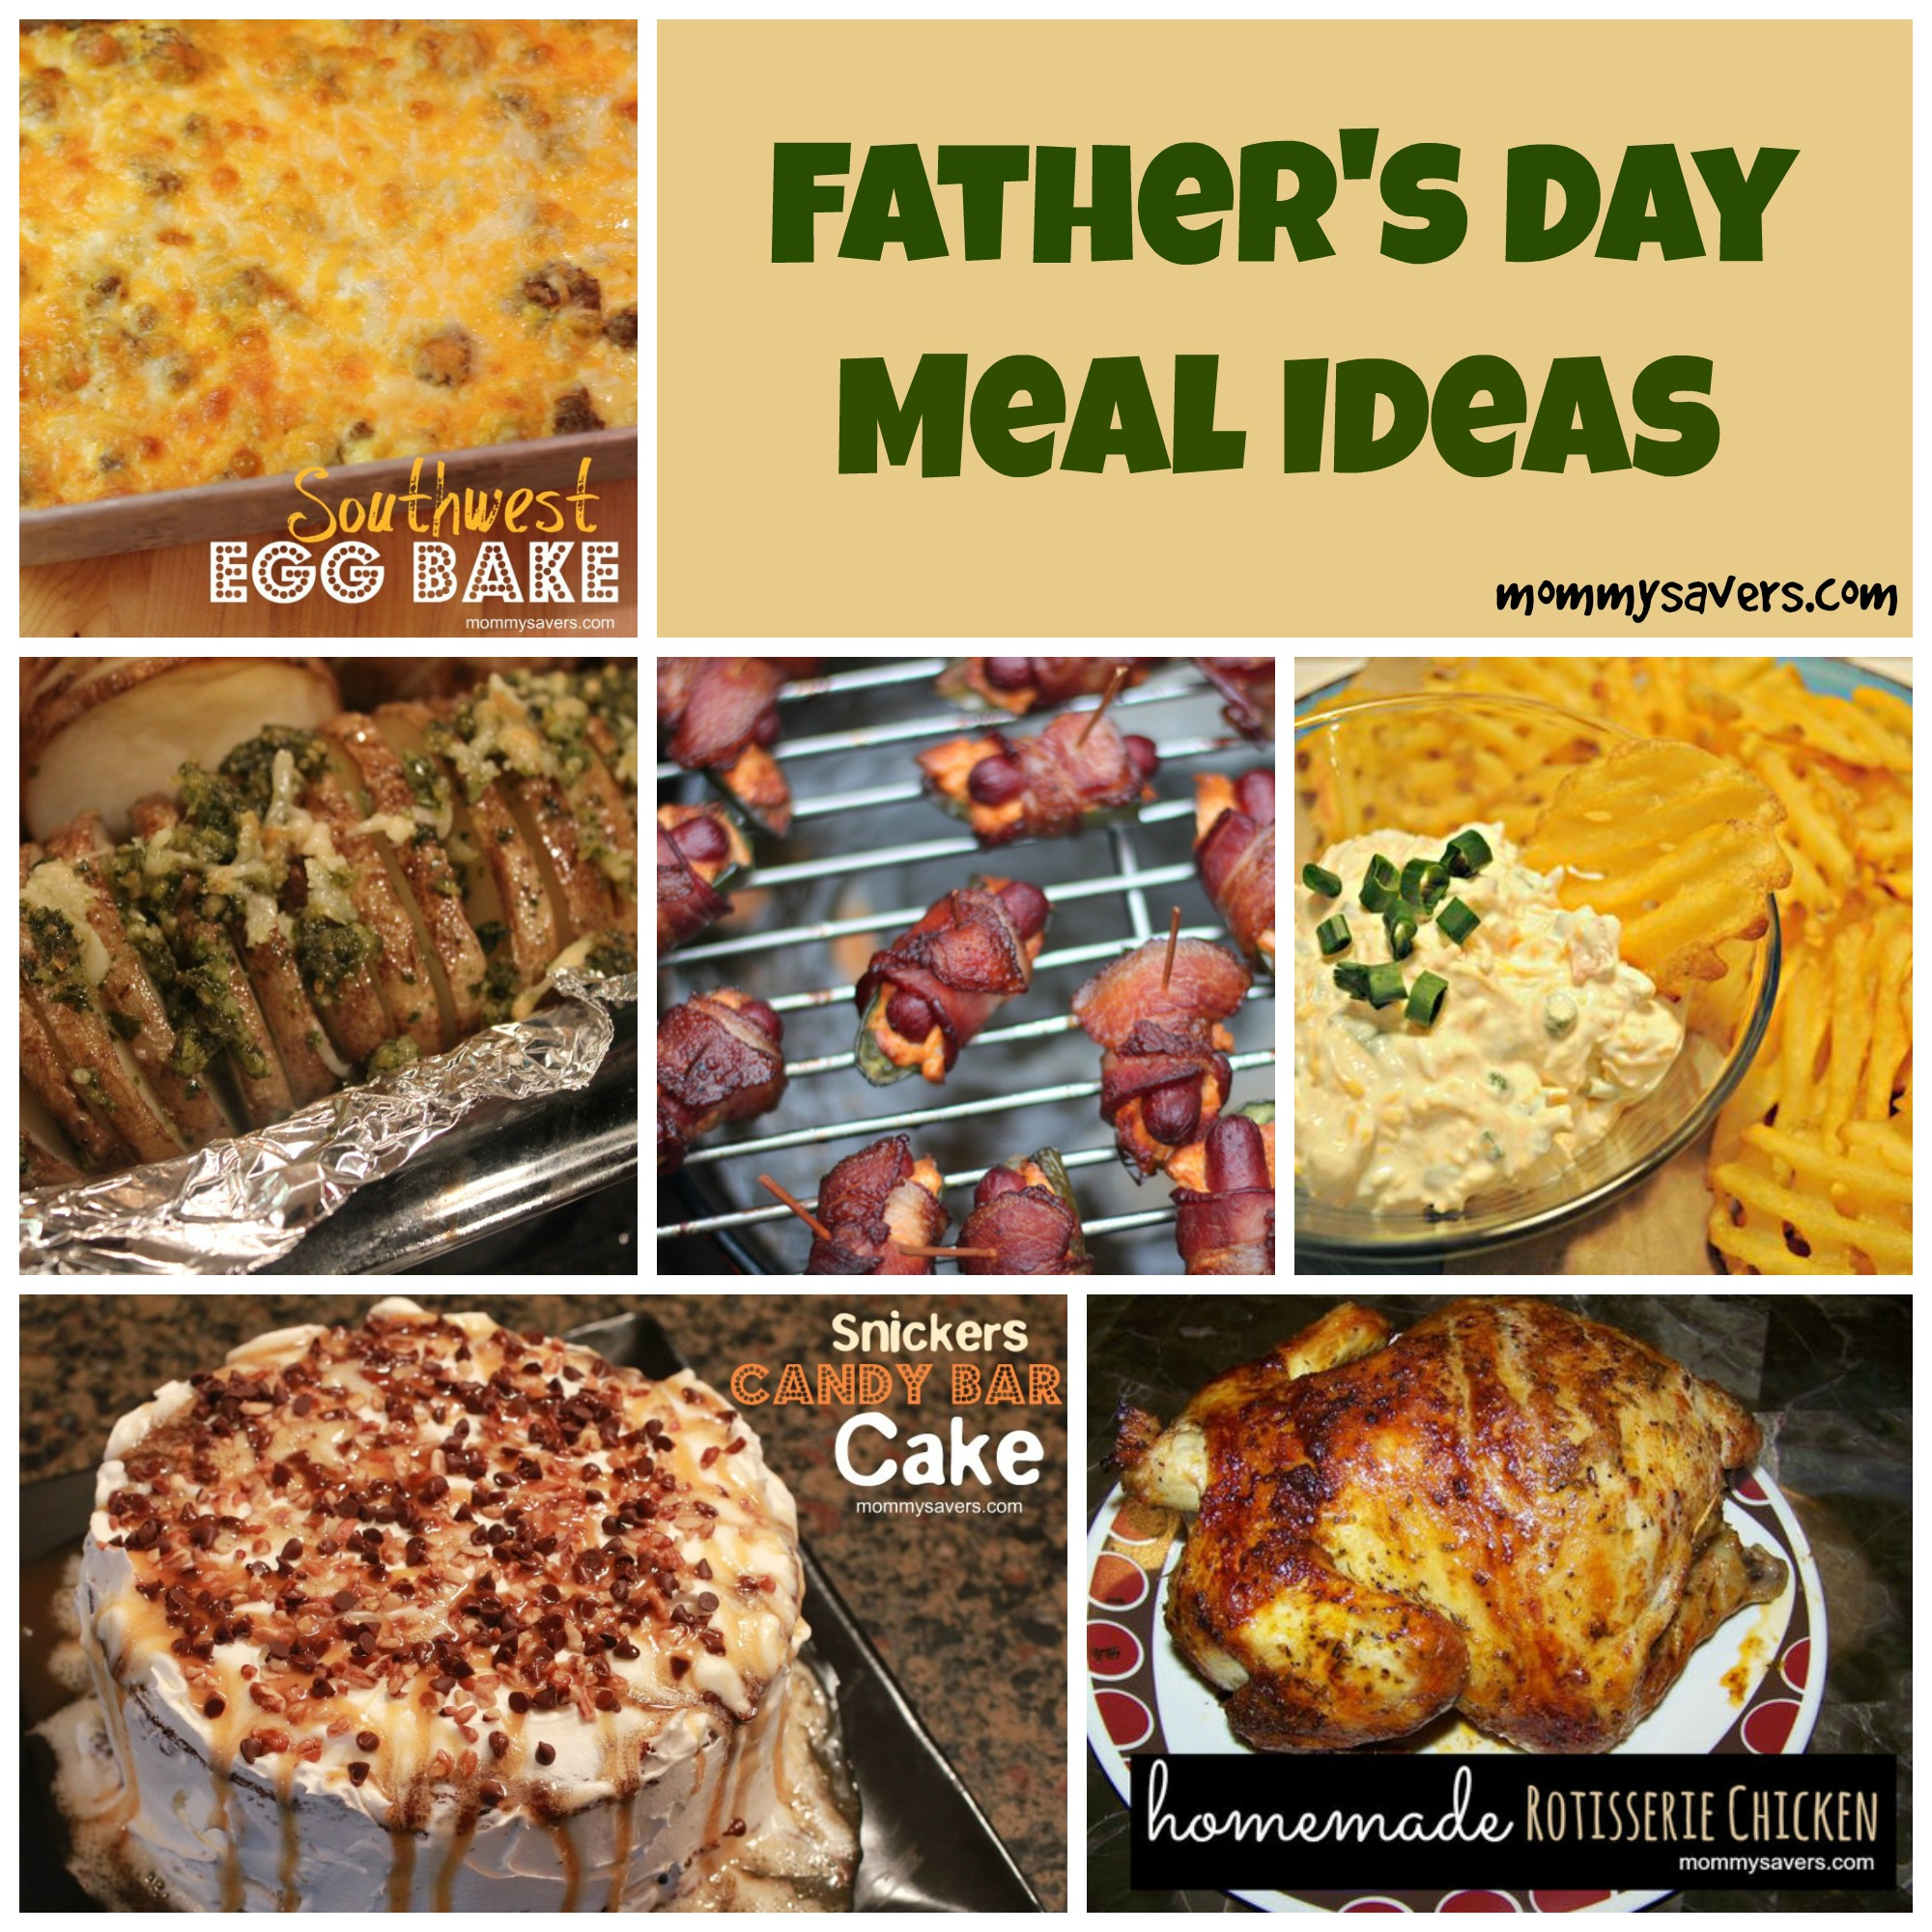 Fathers day meal ideas mommysavers mommysavers fathers day meal ideas forumfinder Choice Image